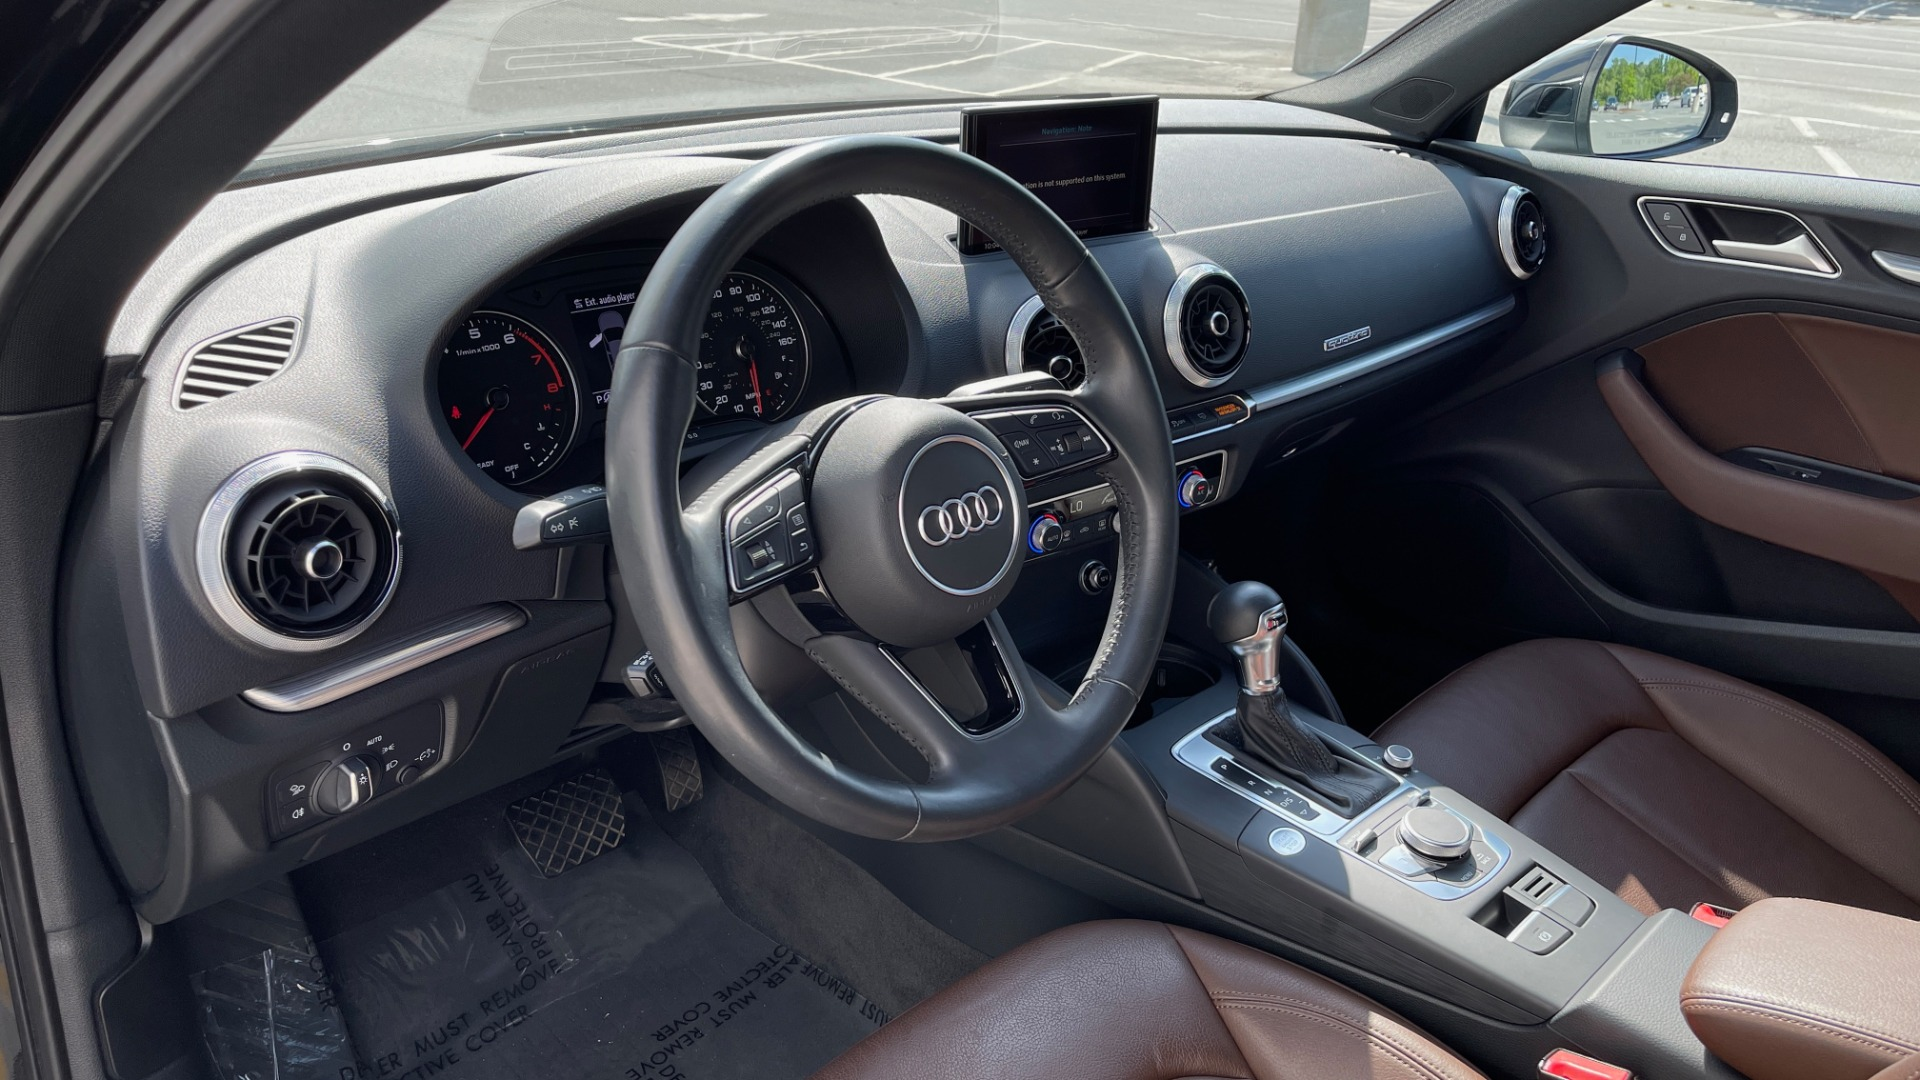 Used 2018 Audi A3 SEDAN PREMIUM PLUS / S-LINE / PANO-ROOF / PARK SYS / REARVIEW for sale $31,795 at Formula Imports in Charlotte NC 28227 27